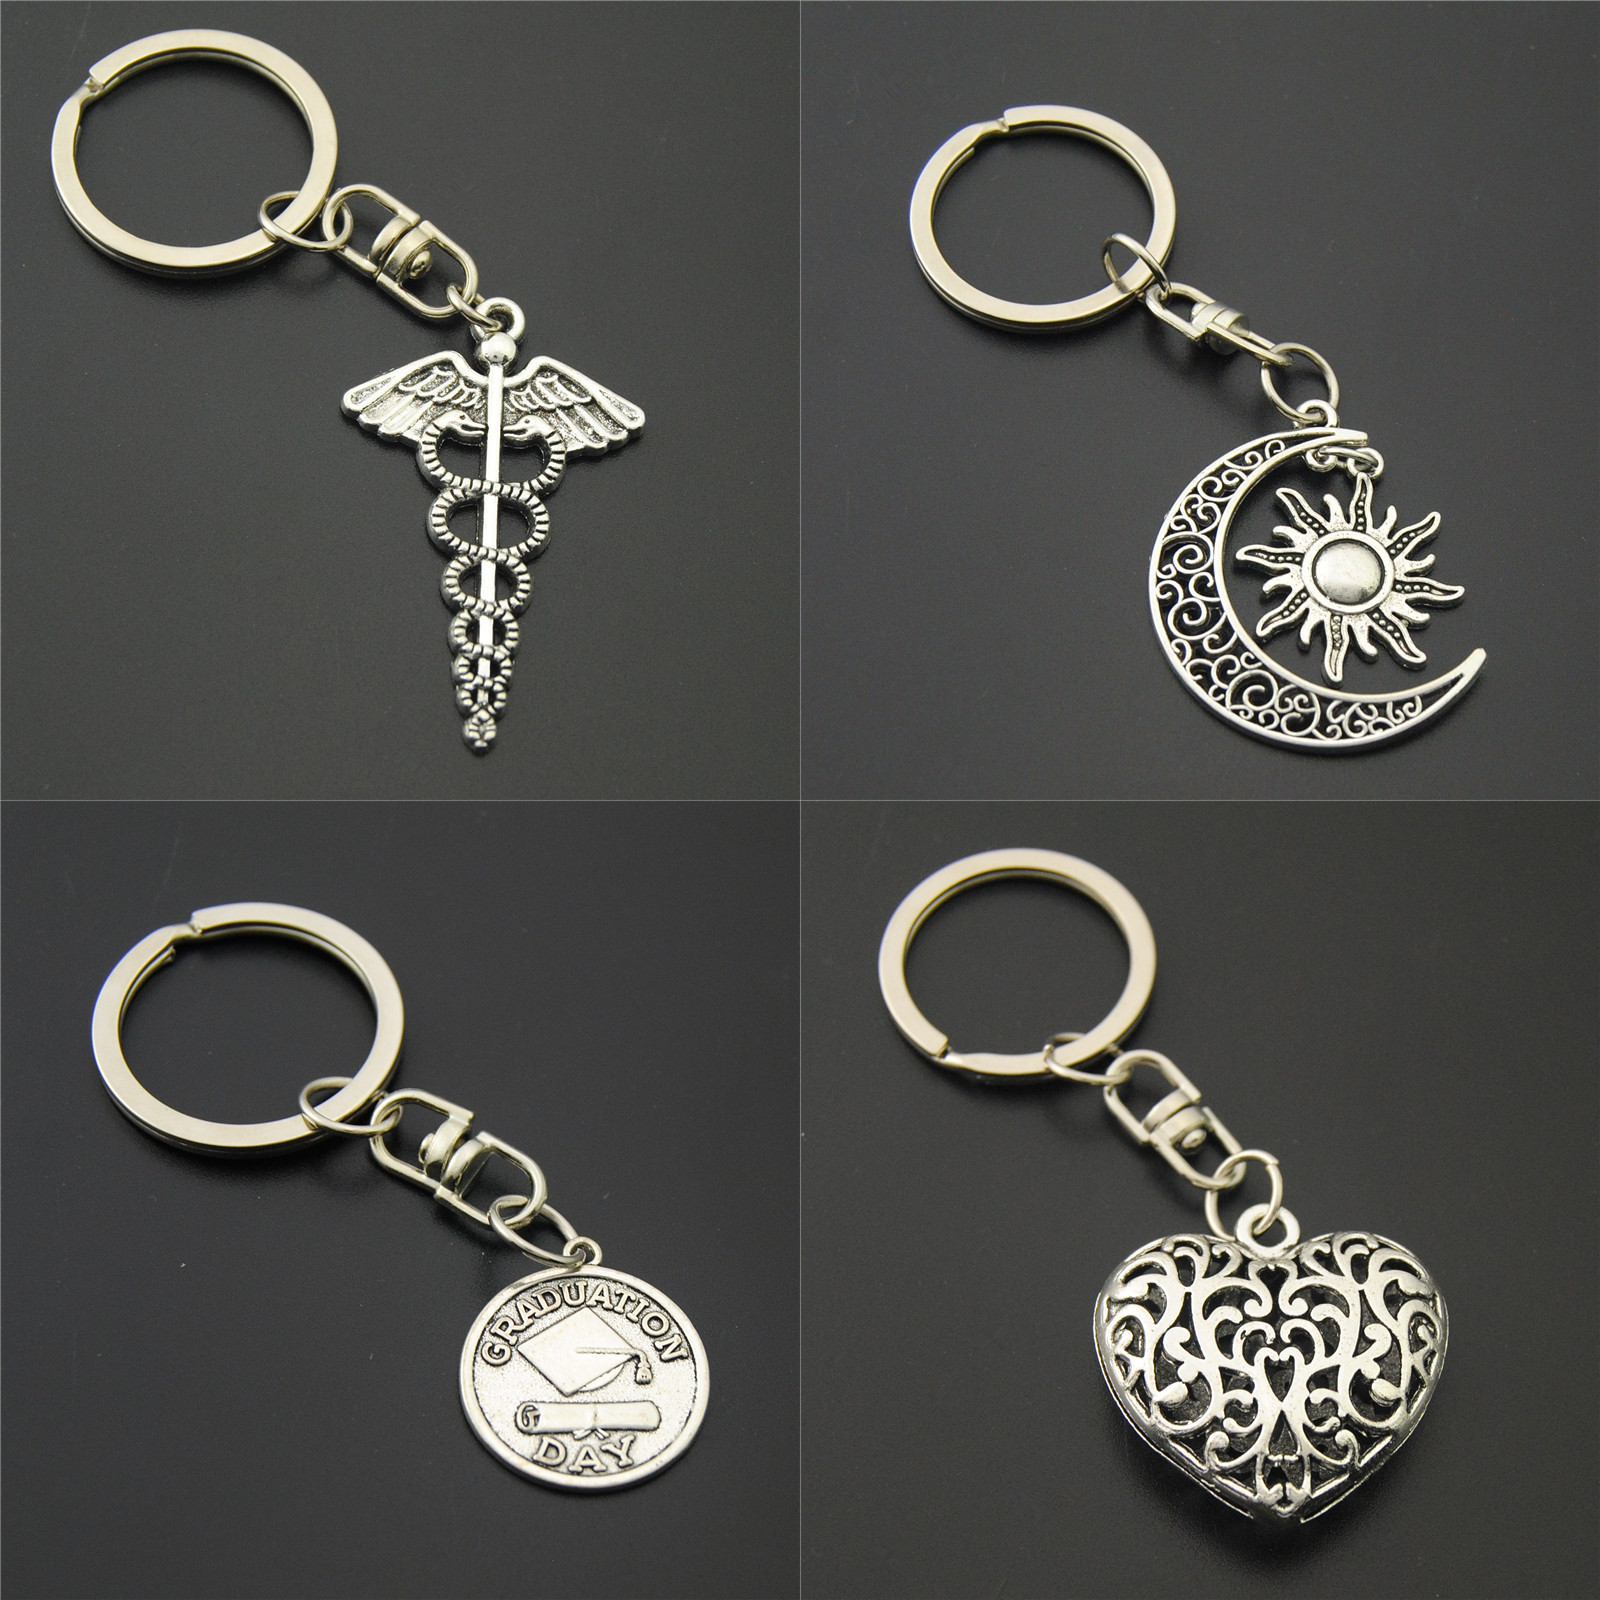 1pc Anitue Silver Sun And Moon Charms Heart Keychains Symbol Mercurial Staff With Wing Snake Keyring Diy Handmade